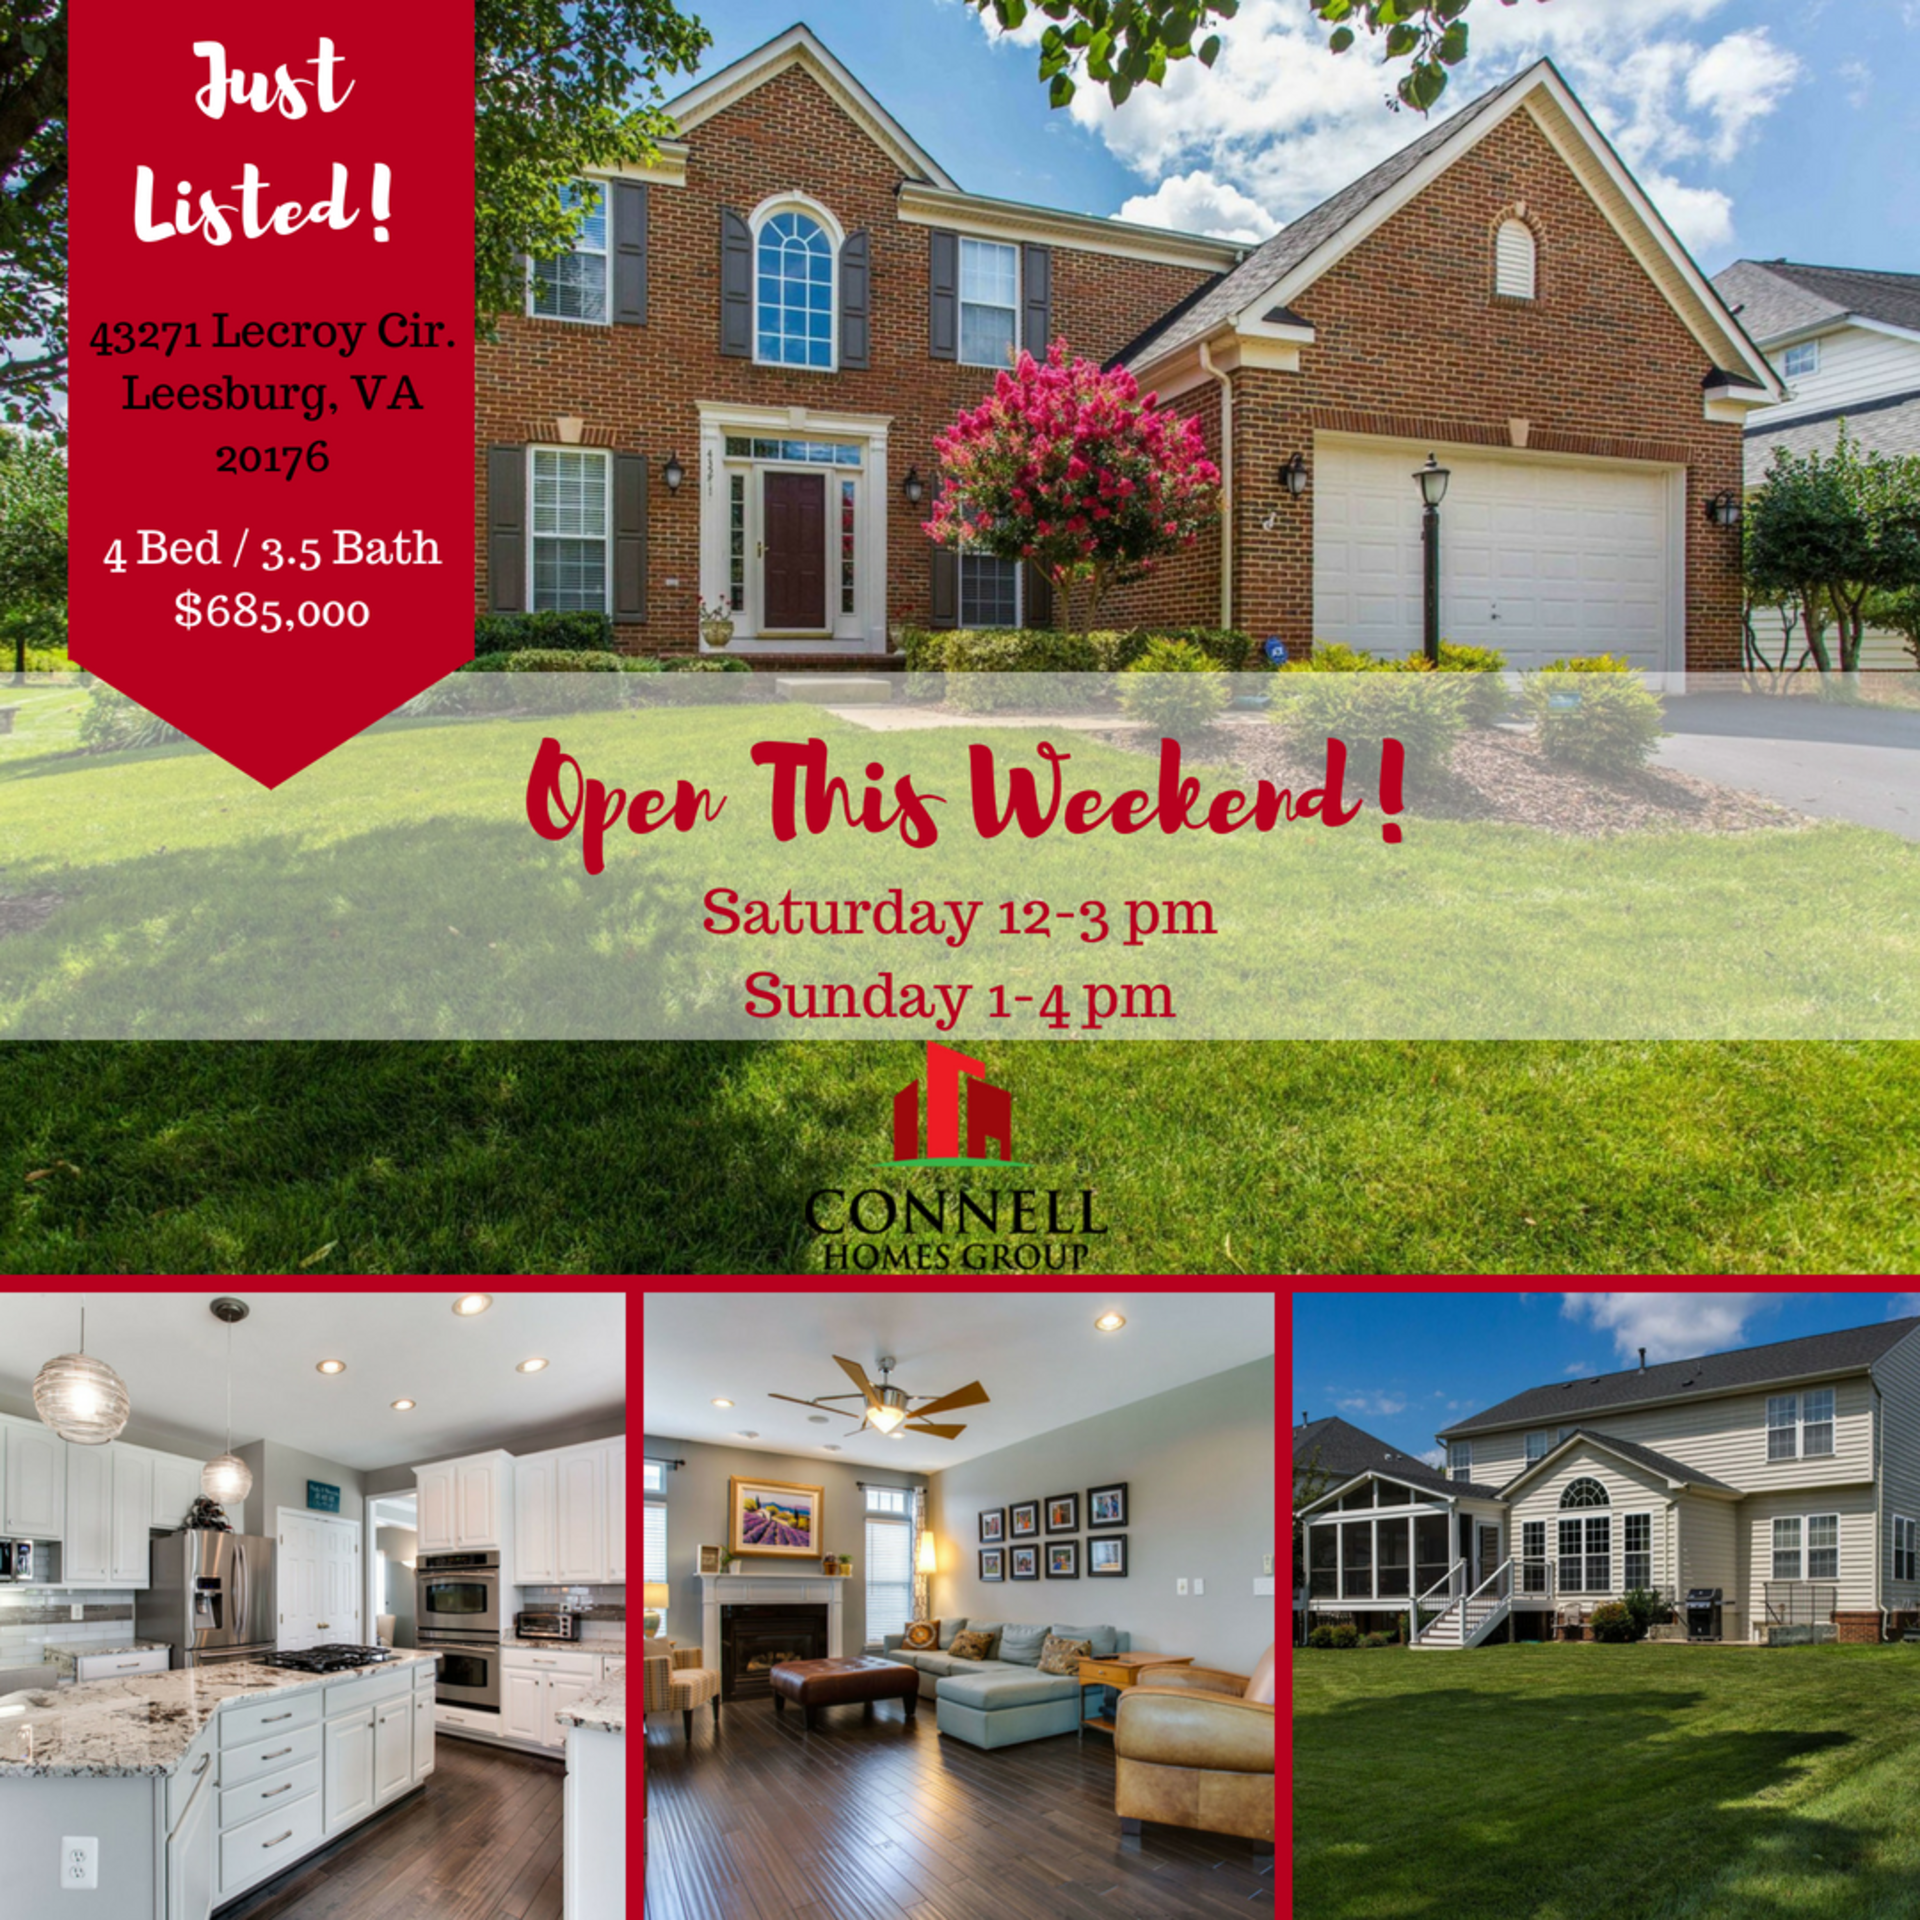 Just Listed! 43271 Lecroy Cir, Leesburg VA